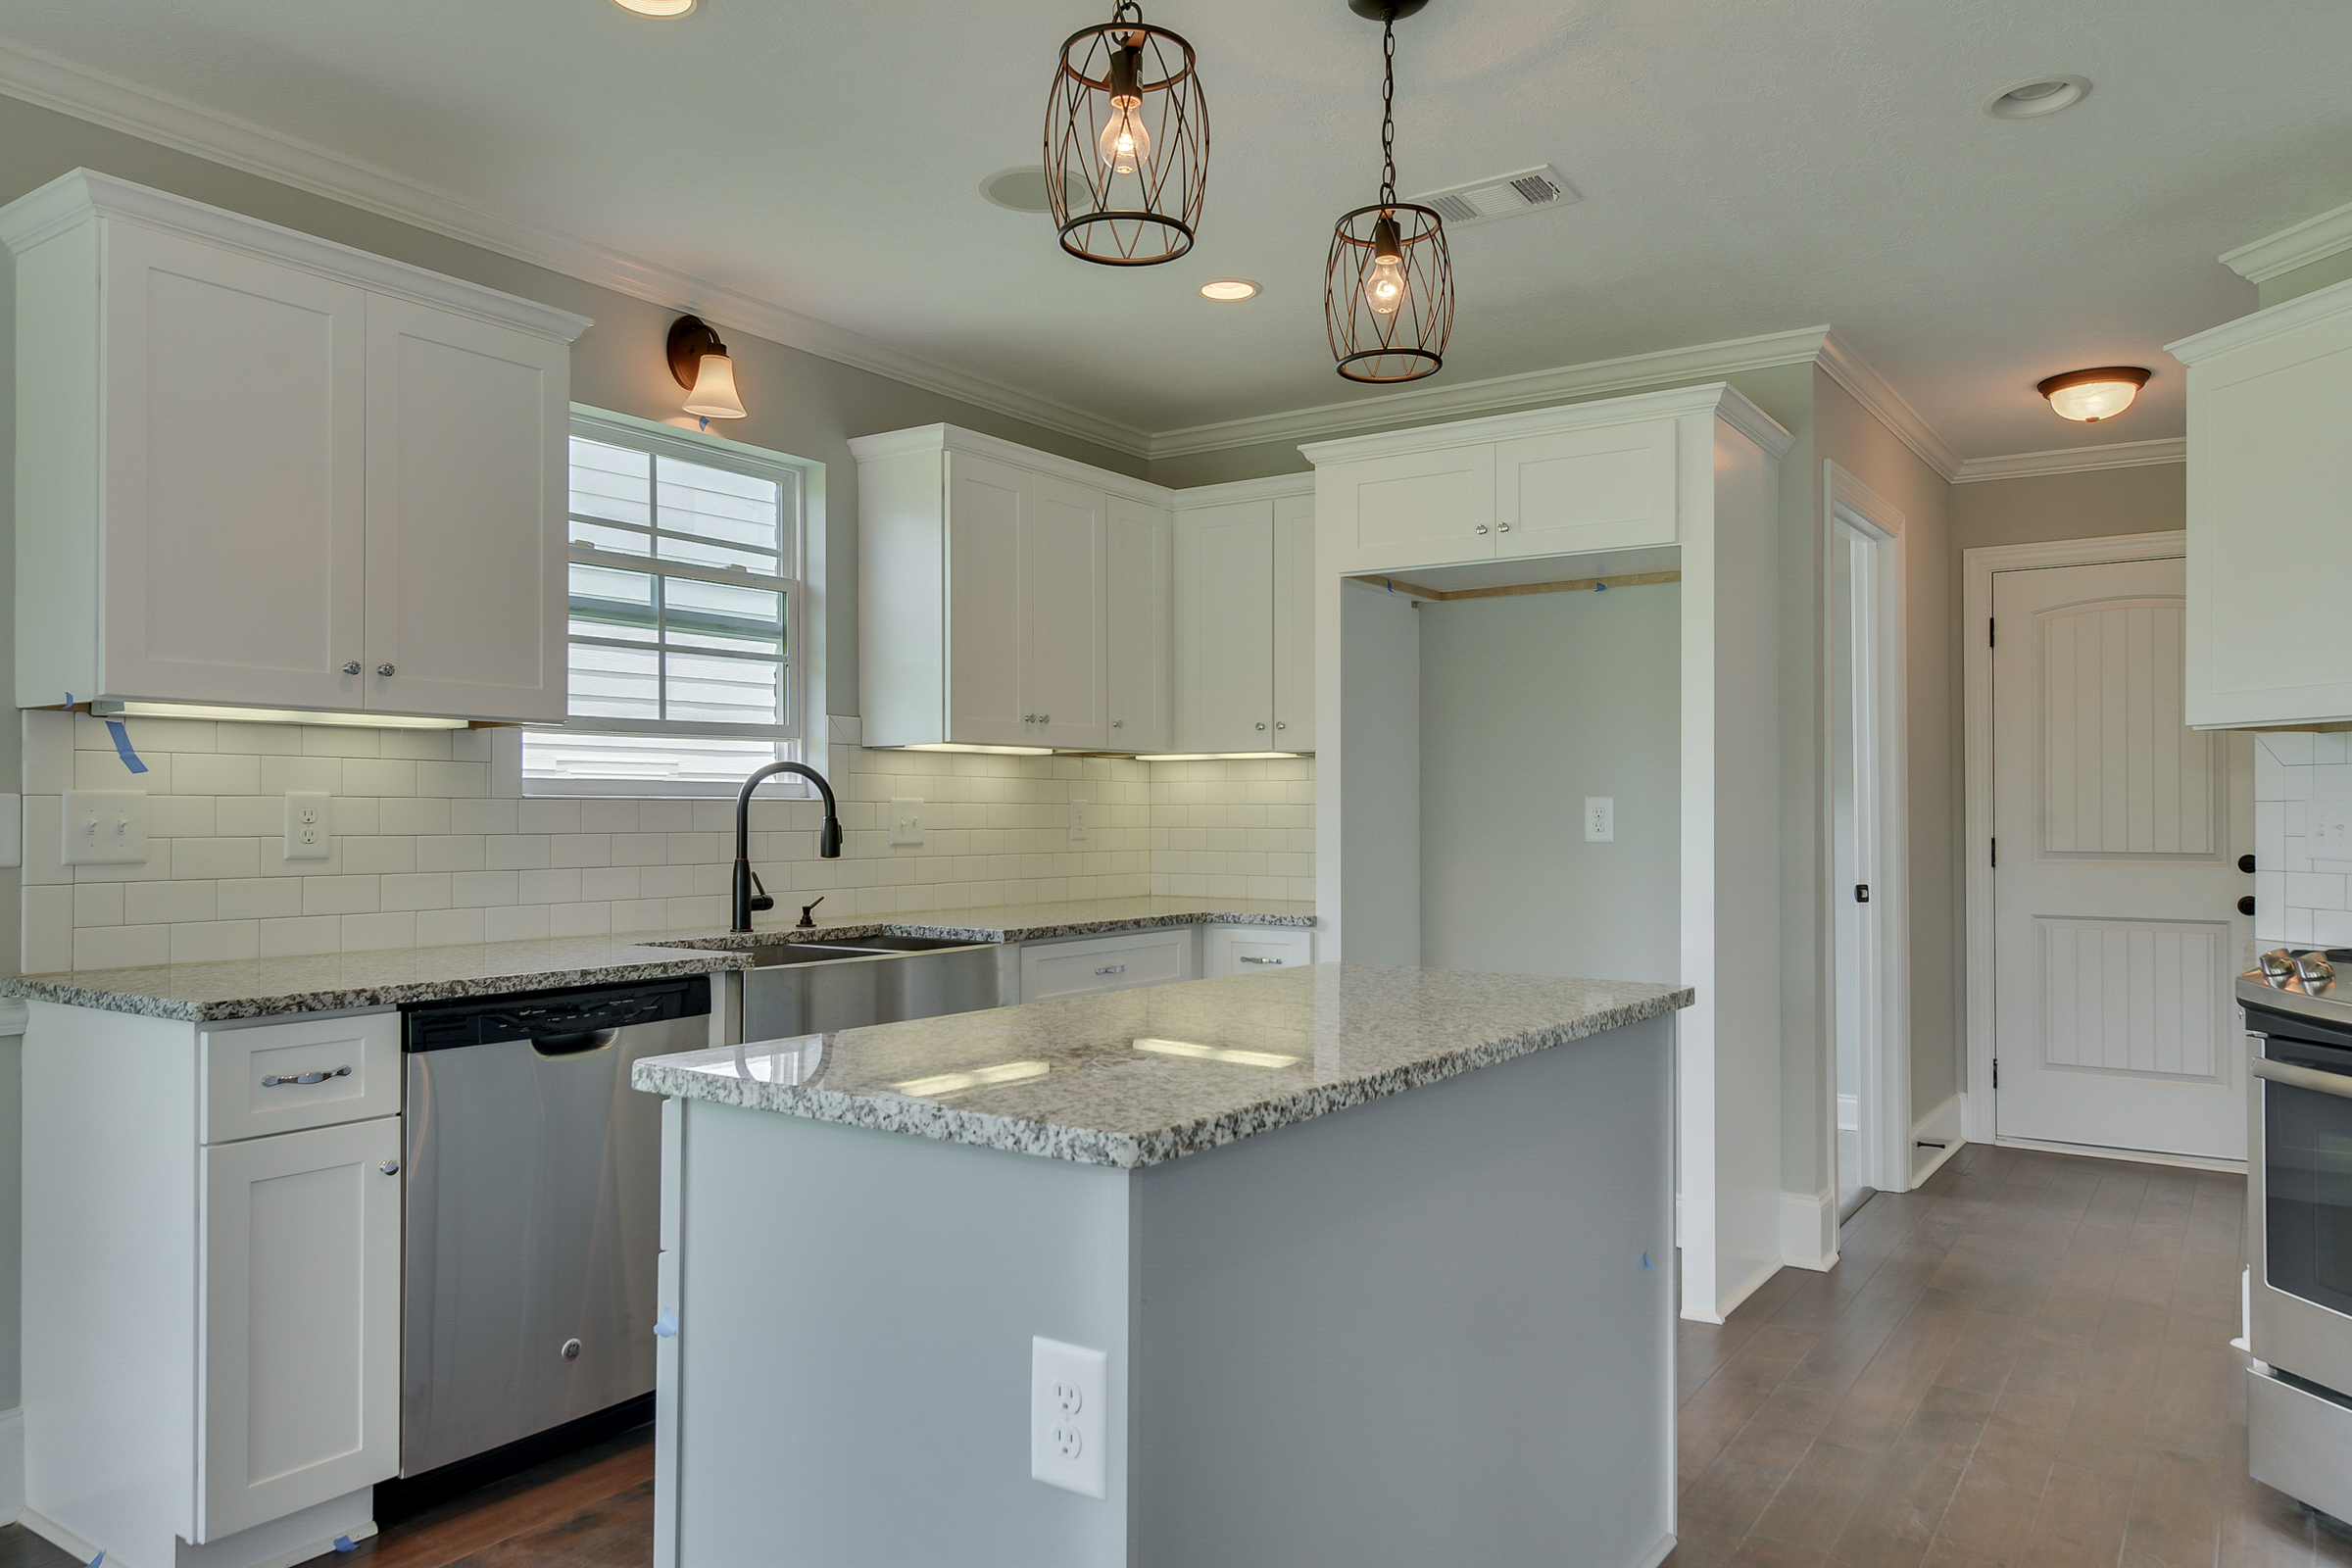 An image of a kitchen with decorative lighting in Kelarie home.